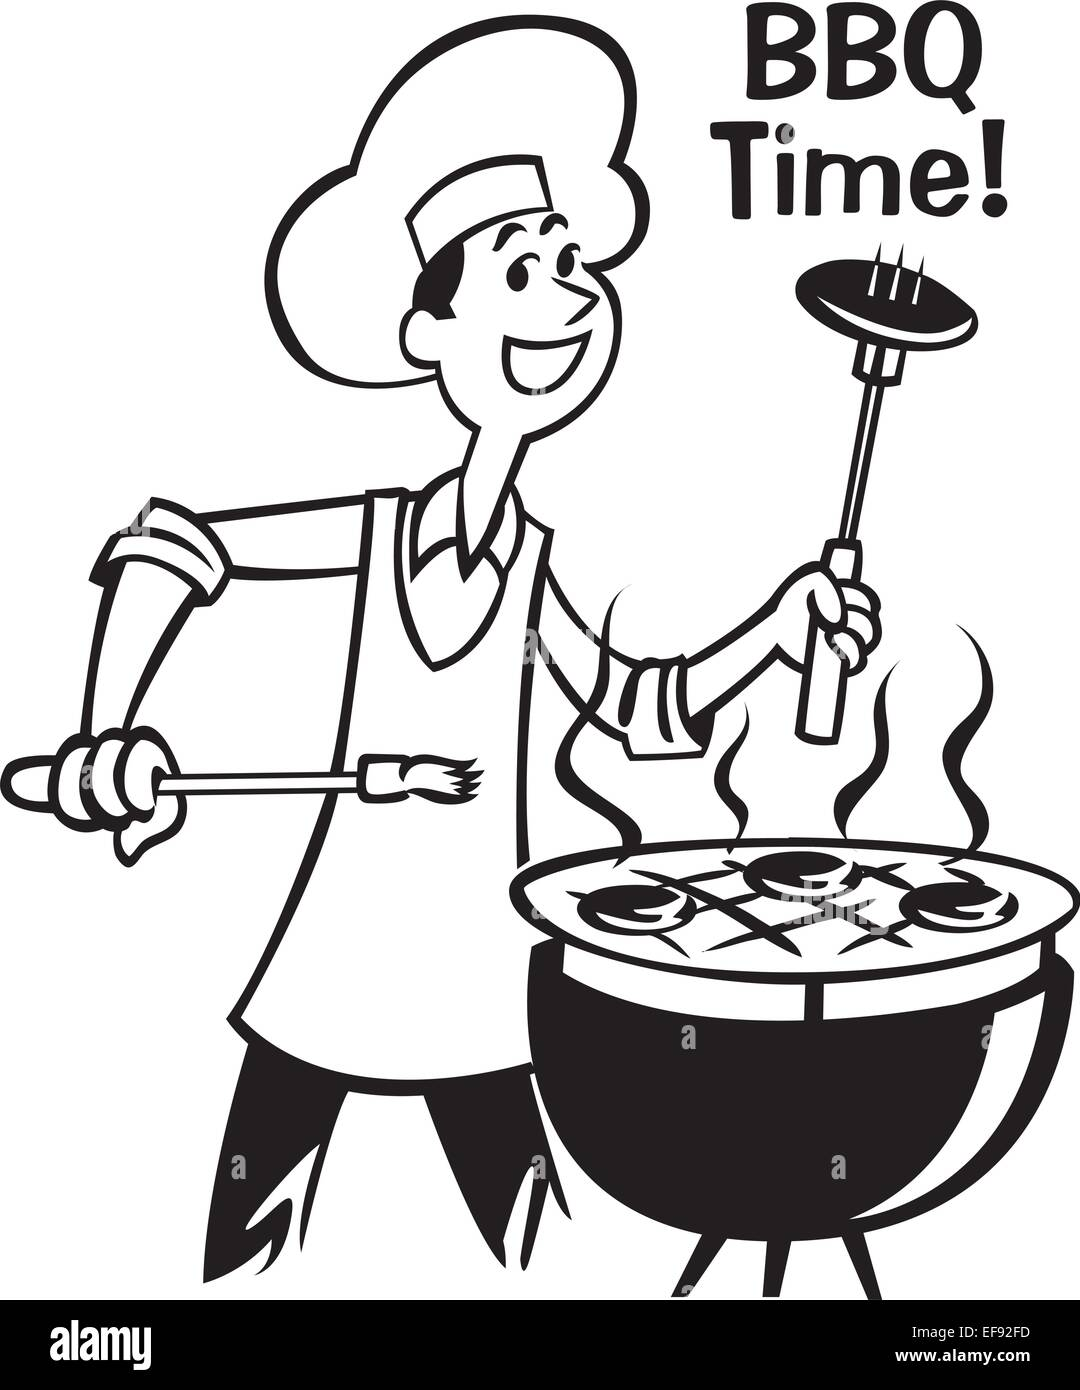 A man barbecuing with the words BBQ Time! written above it - Stock Vector